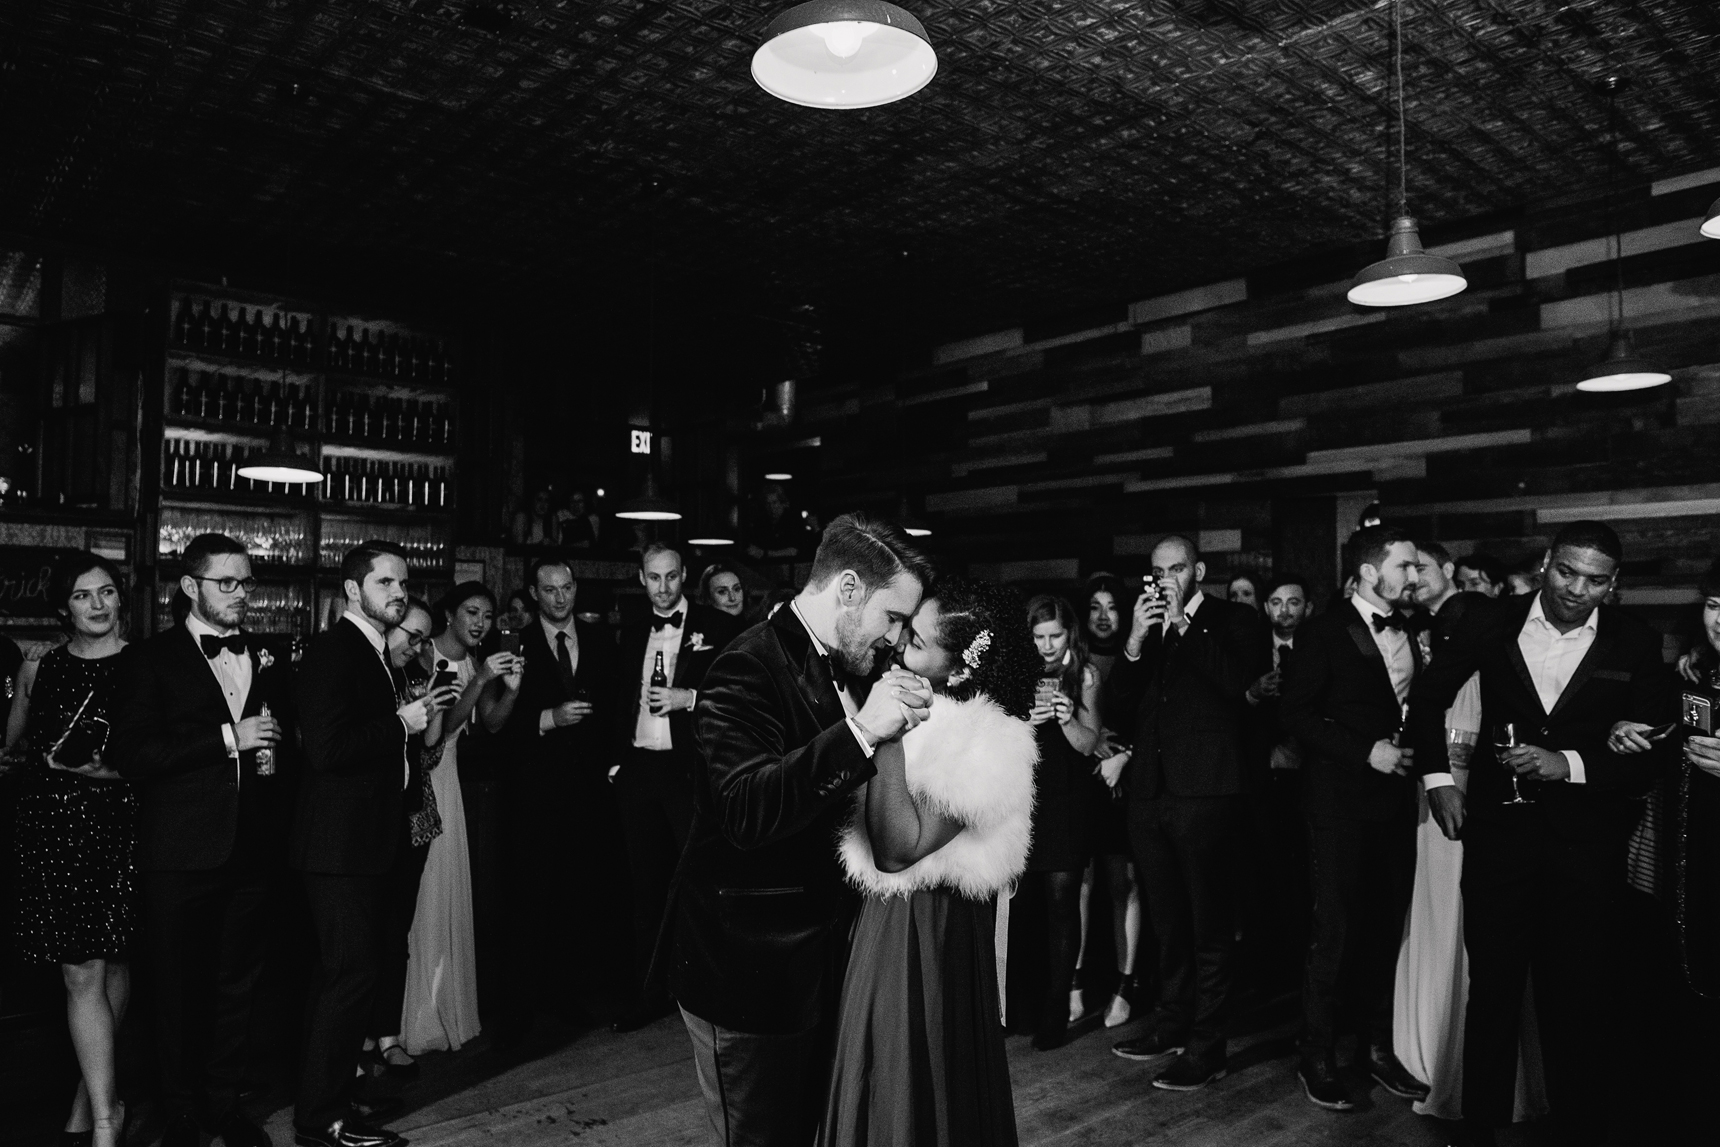 KP_BrooklynWinery_Wedding_NewYork_Photographer127.jpg